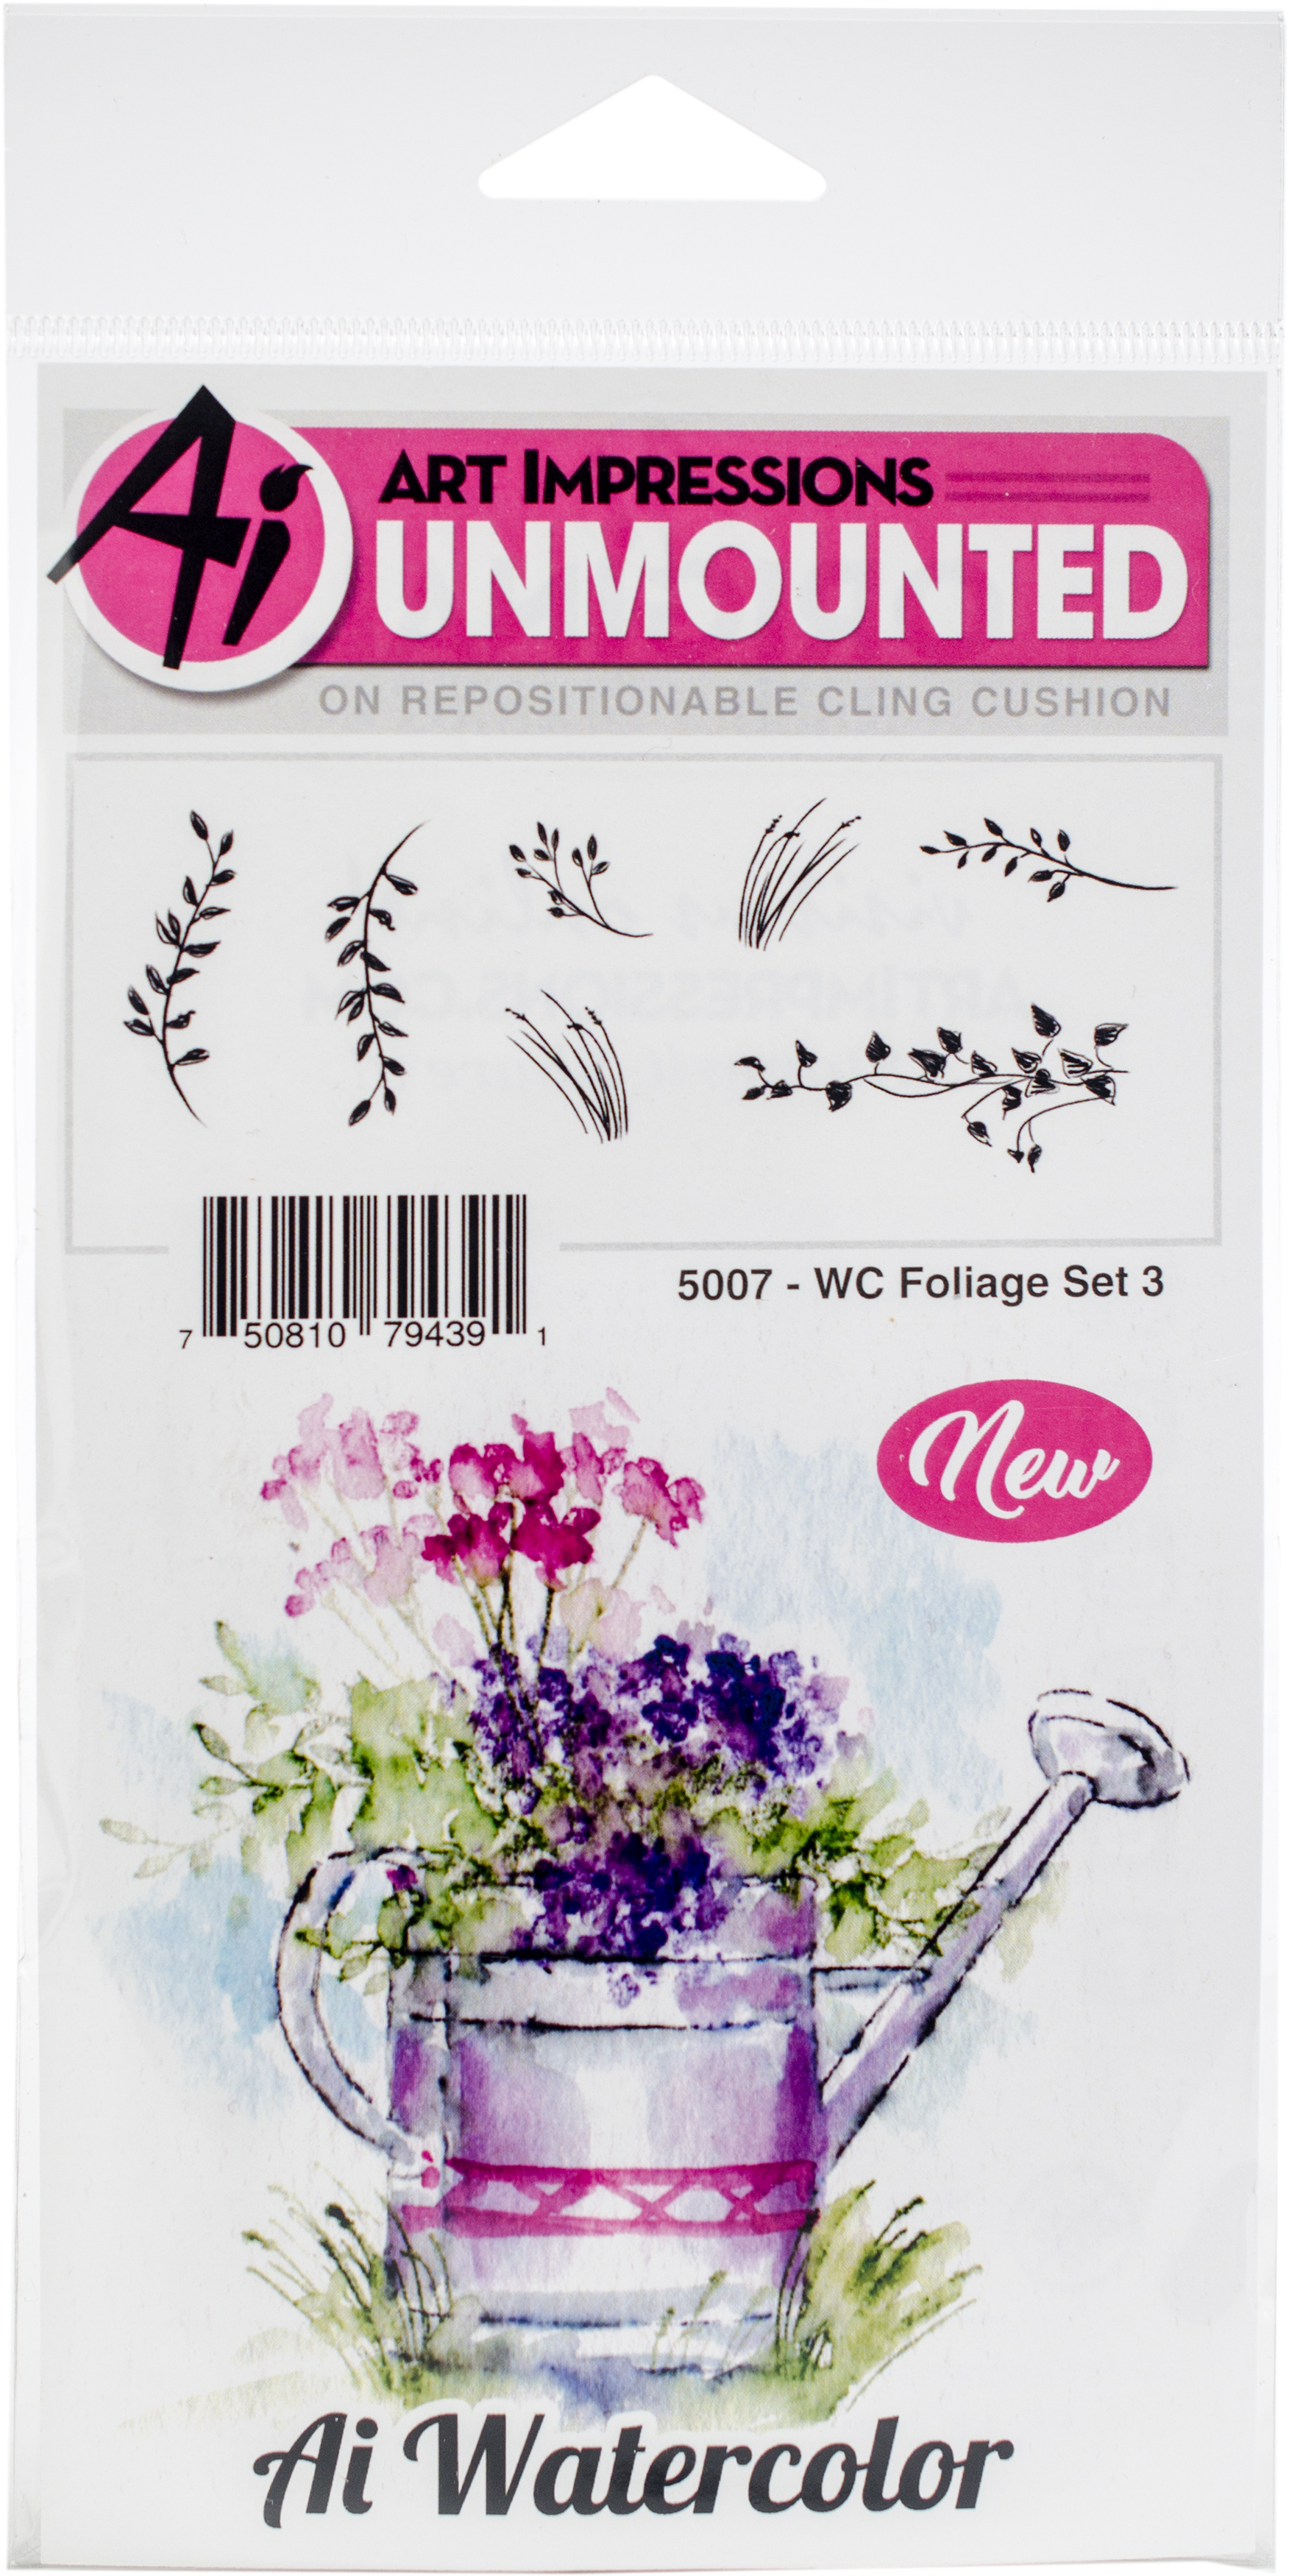 Art Impressions Watercolor Cling Rubber Stamps -Foliage Set 3